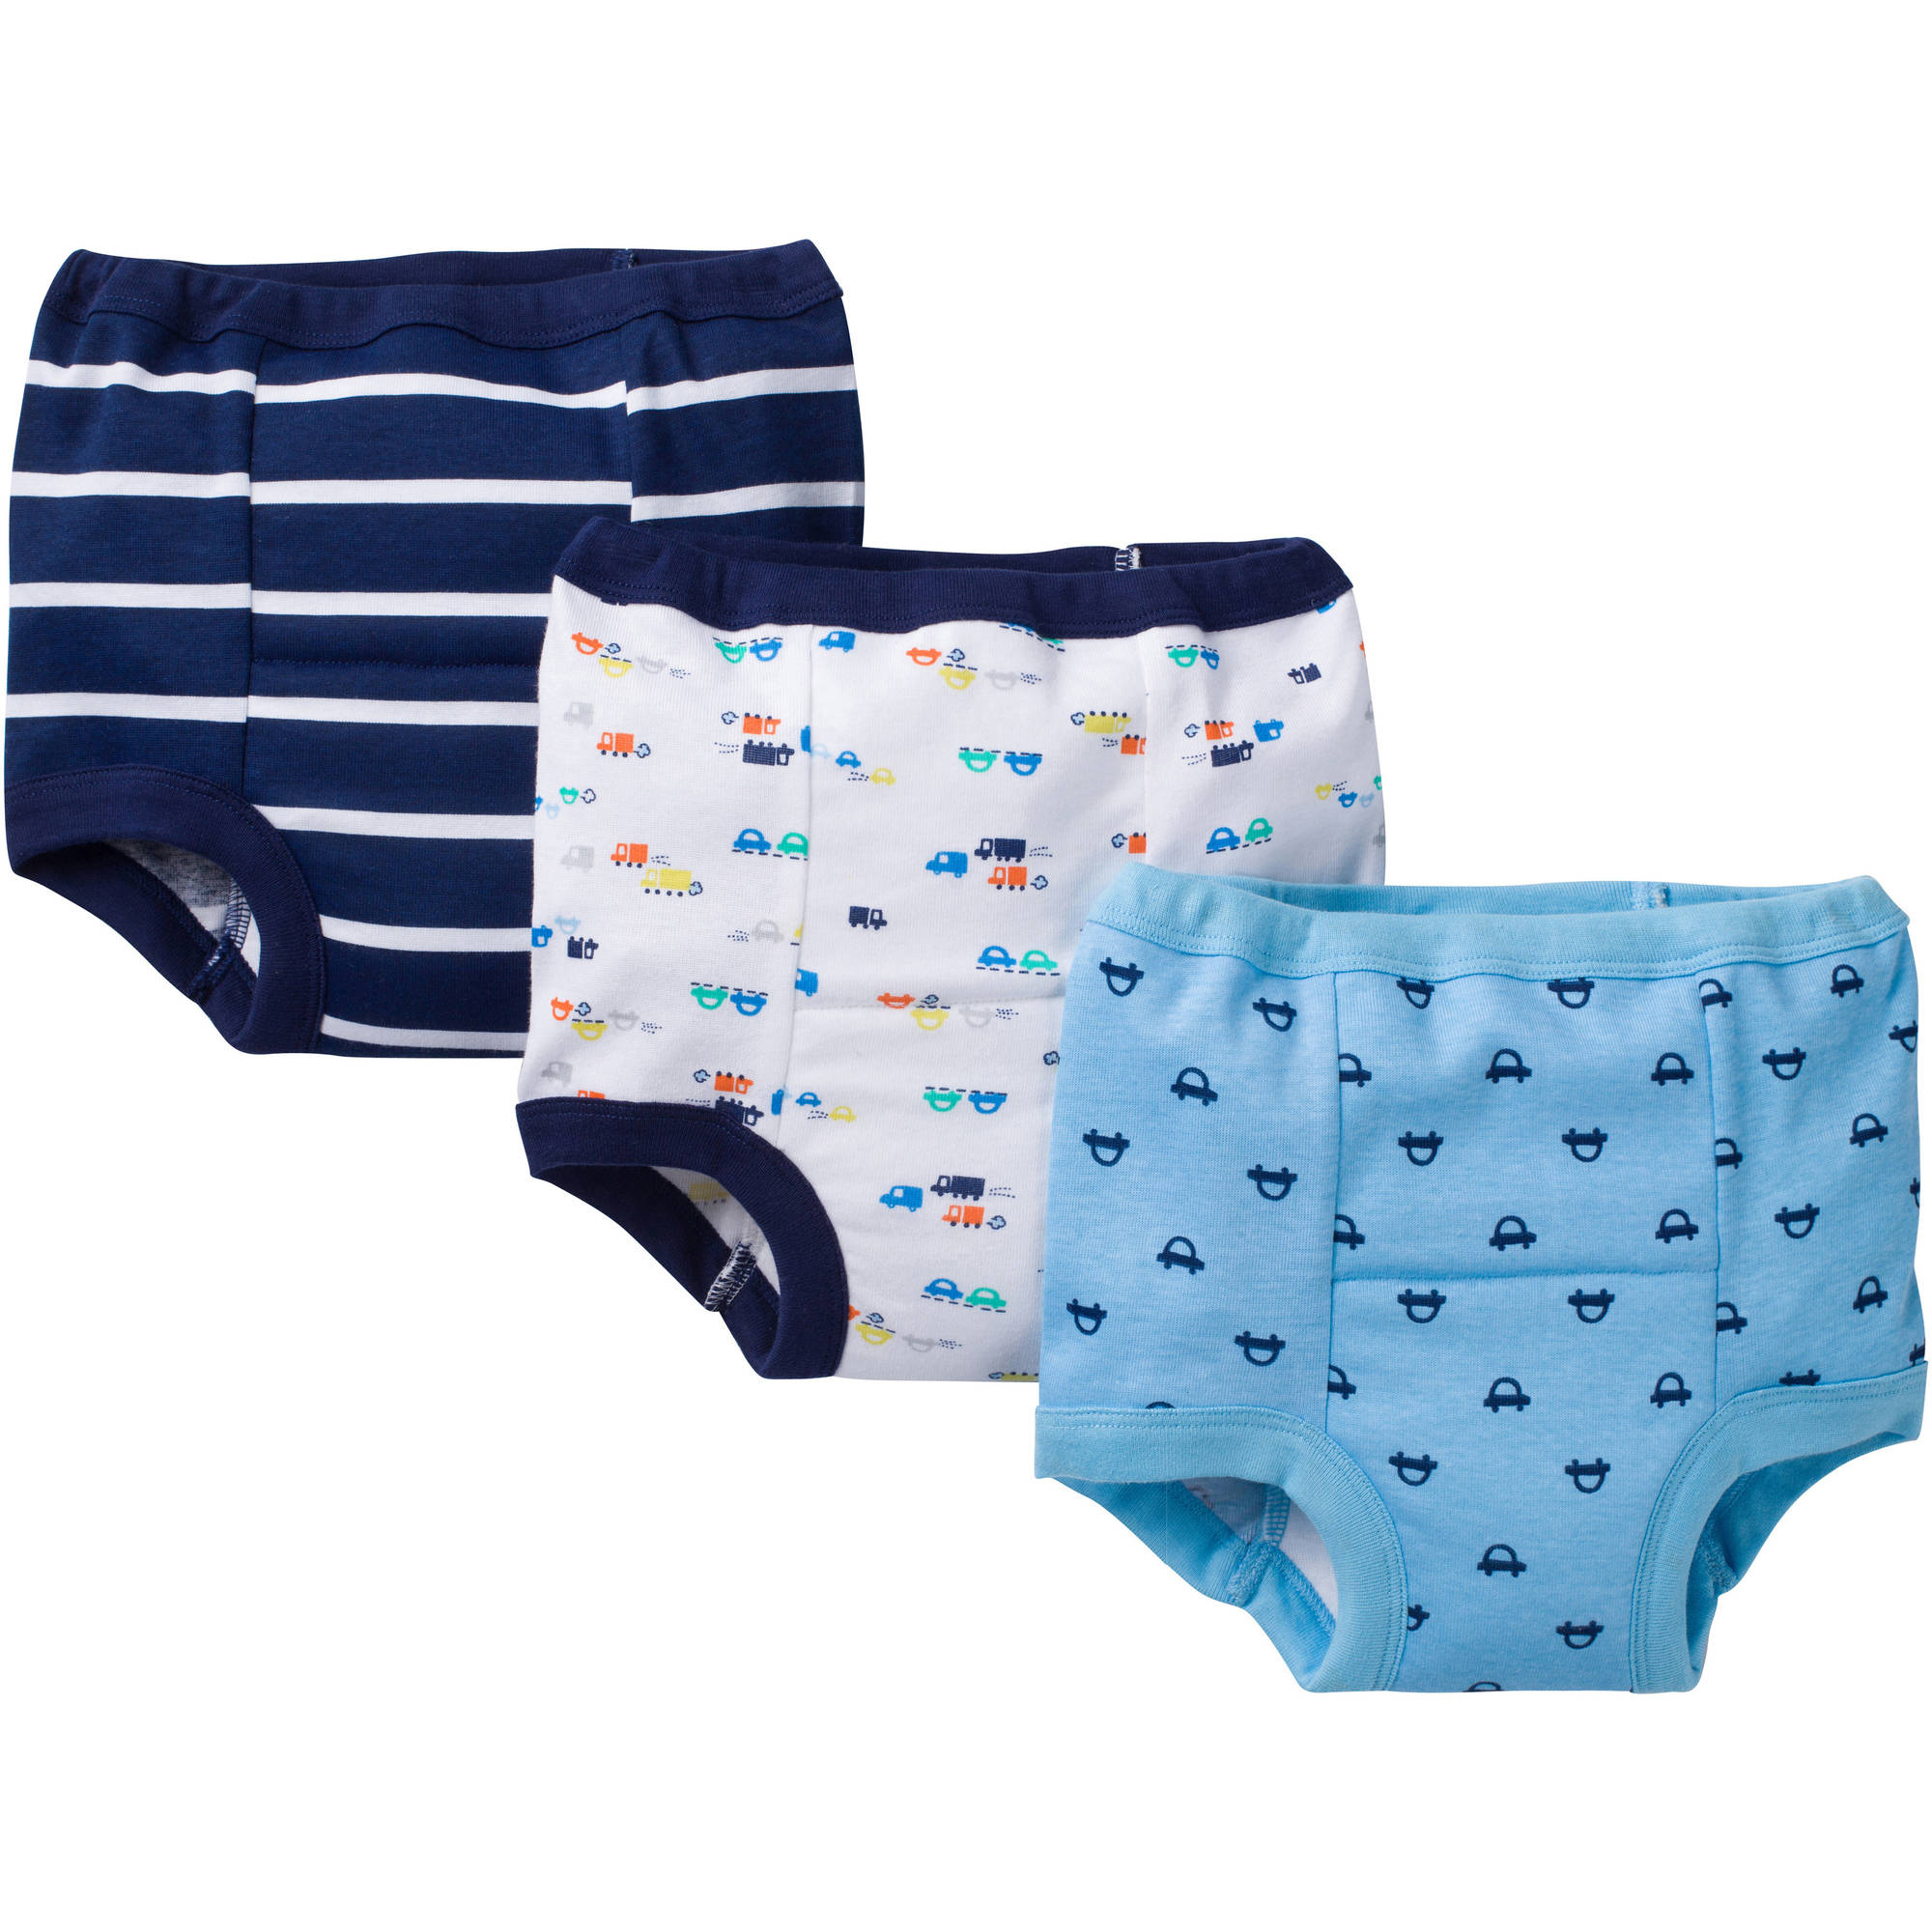 Gerber Toddler Boy Assorted Reusable Training Pants, 3-Pack